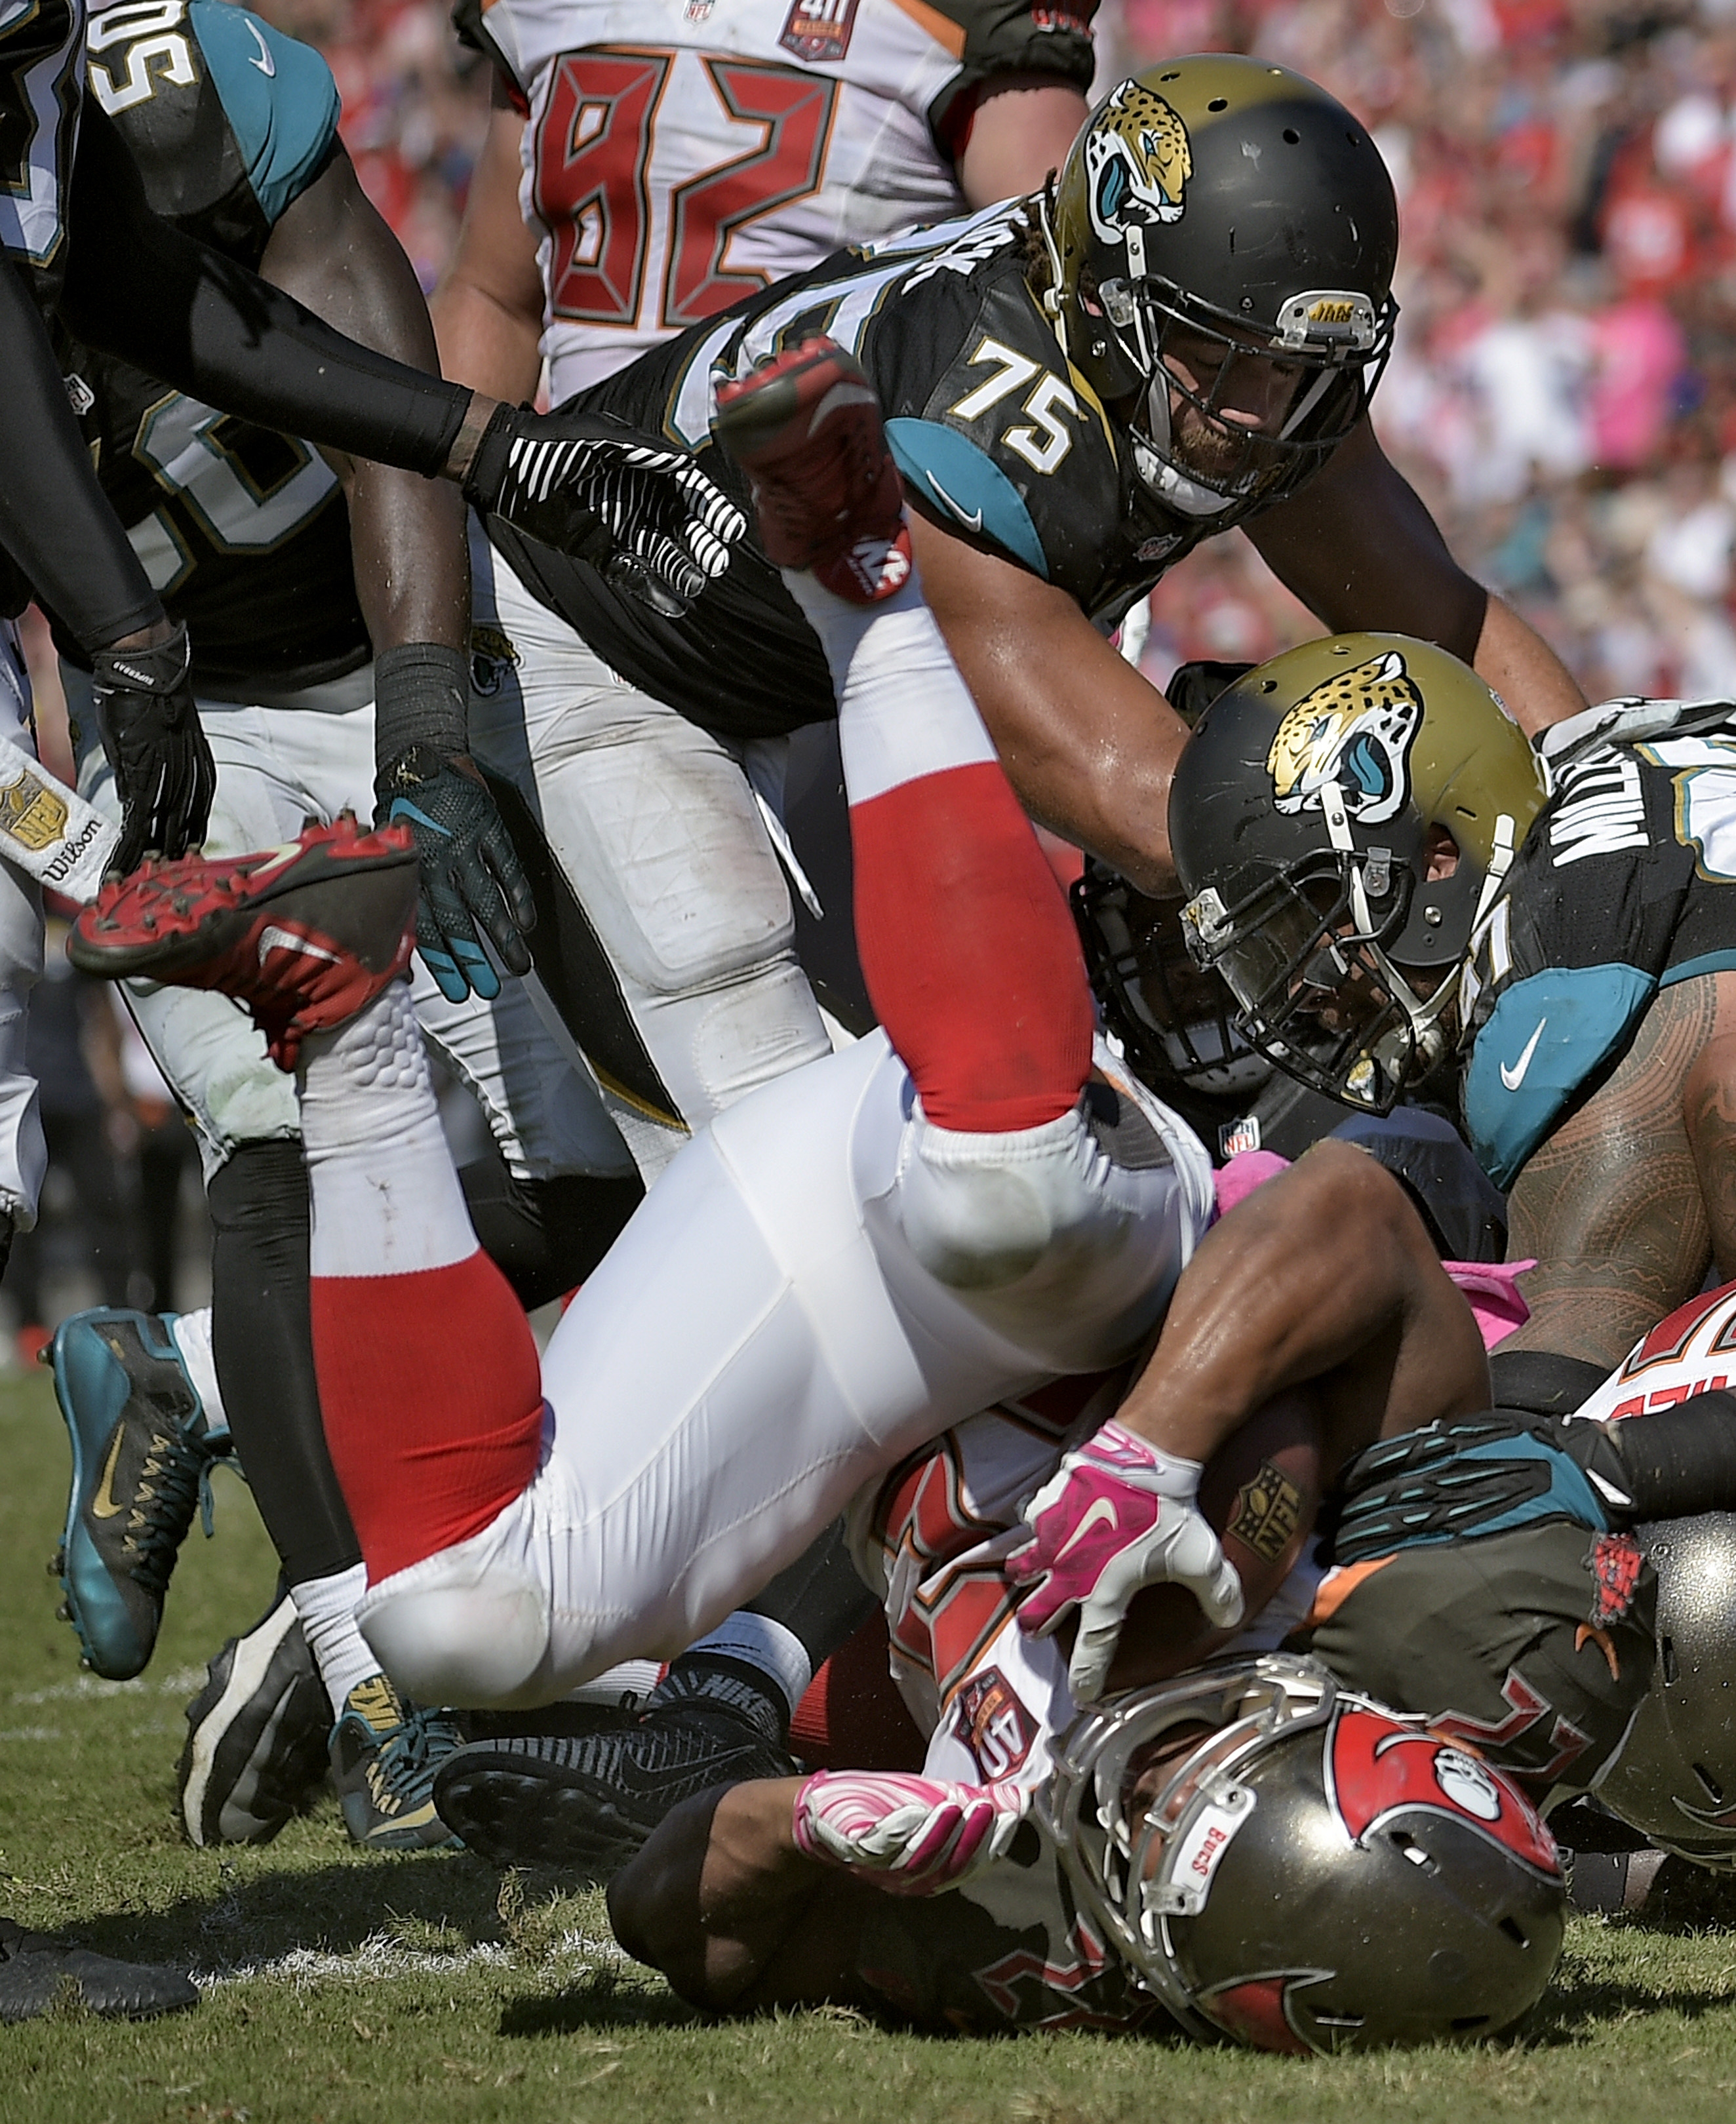 Tampa Bay Buccaneers running back Doug Martin (22) flips over Jacksonville Jaguars defensive end Jared Odrick (75) after scoring on a 1-yard touchdown run during the fourth quarter of an NFL football game Sunday, Oct. 11, 2015, in Tampa, Fla. (AP Photo/Ph